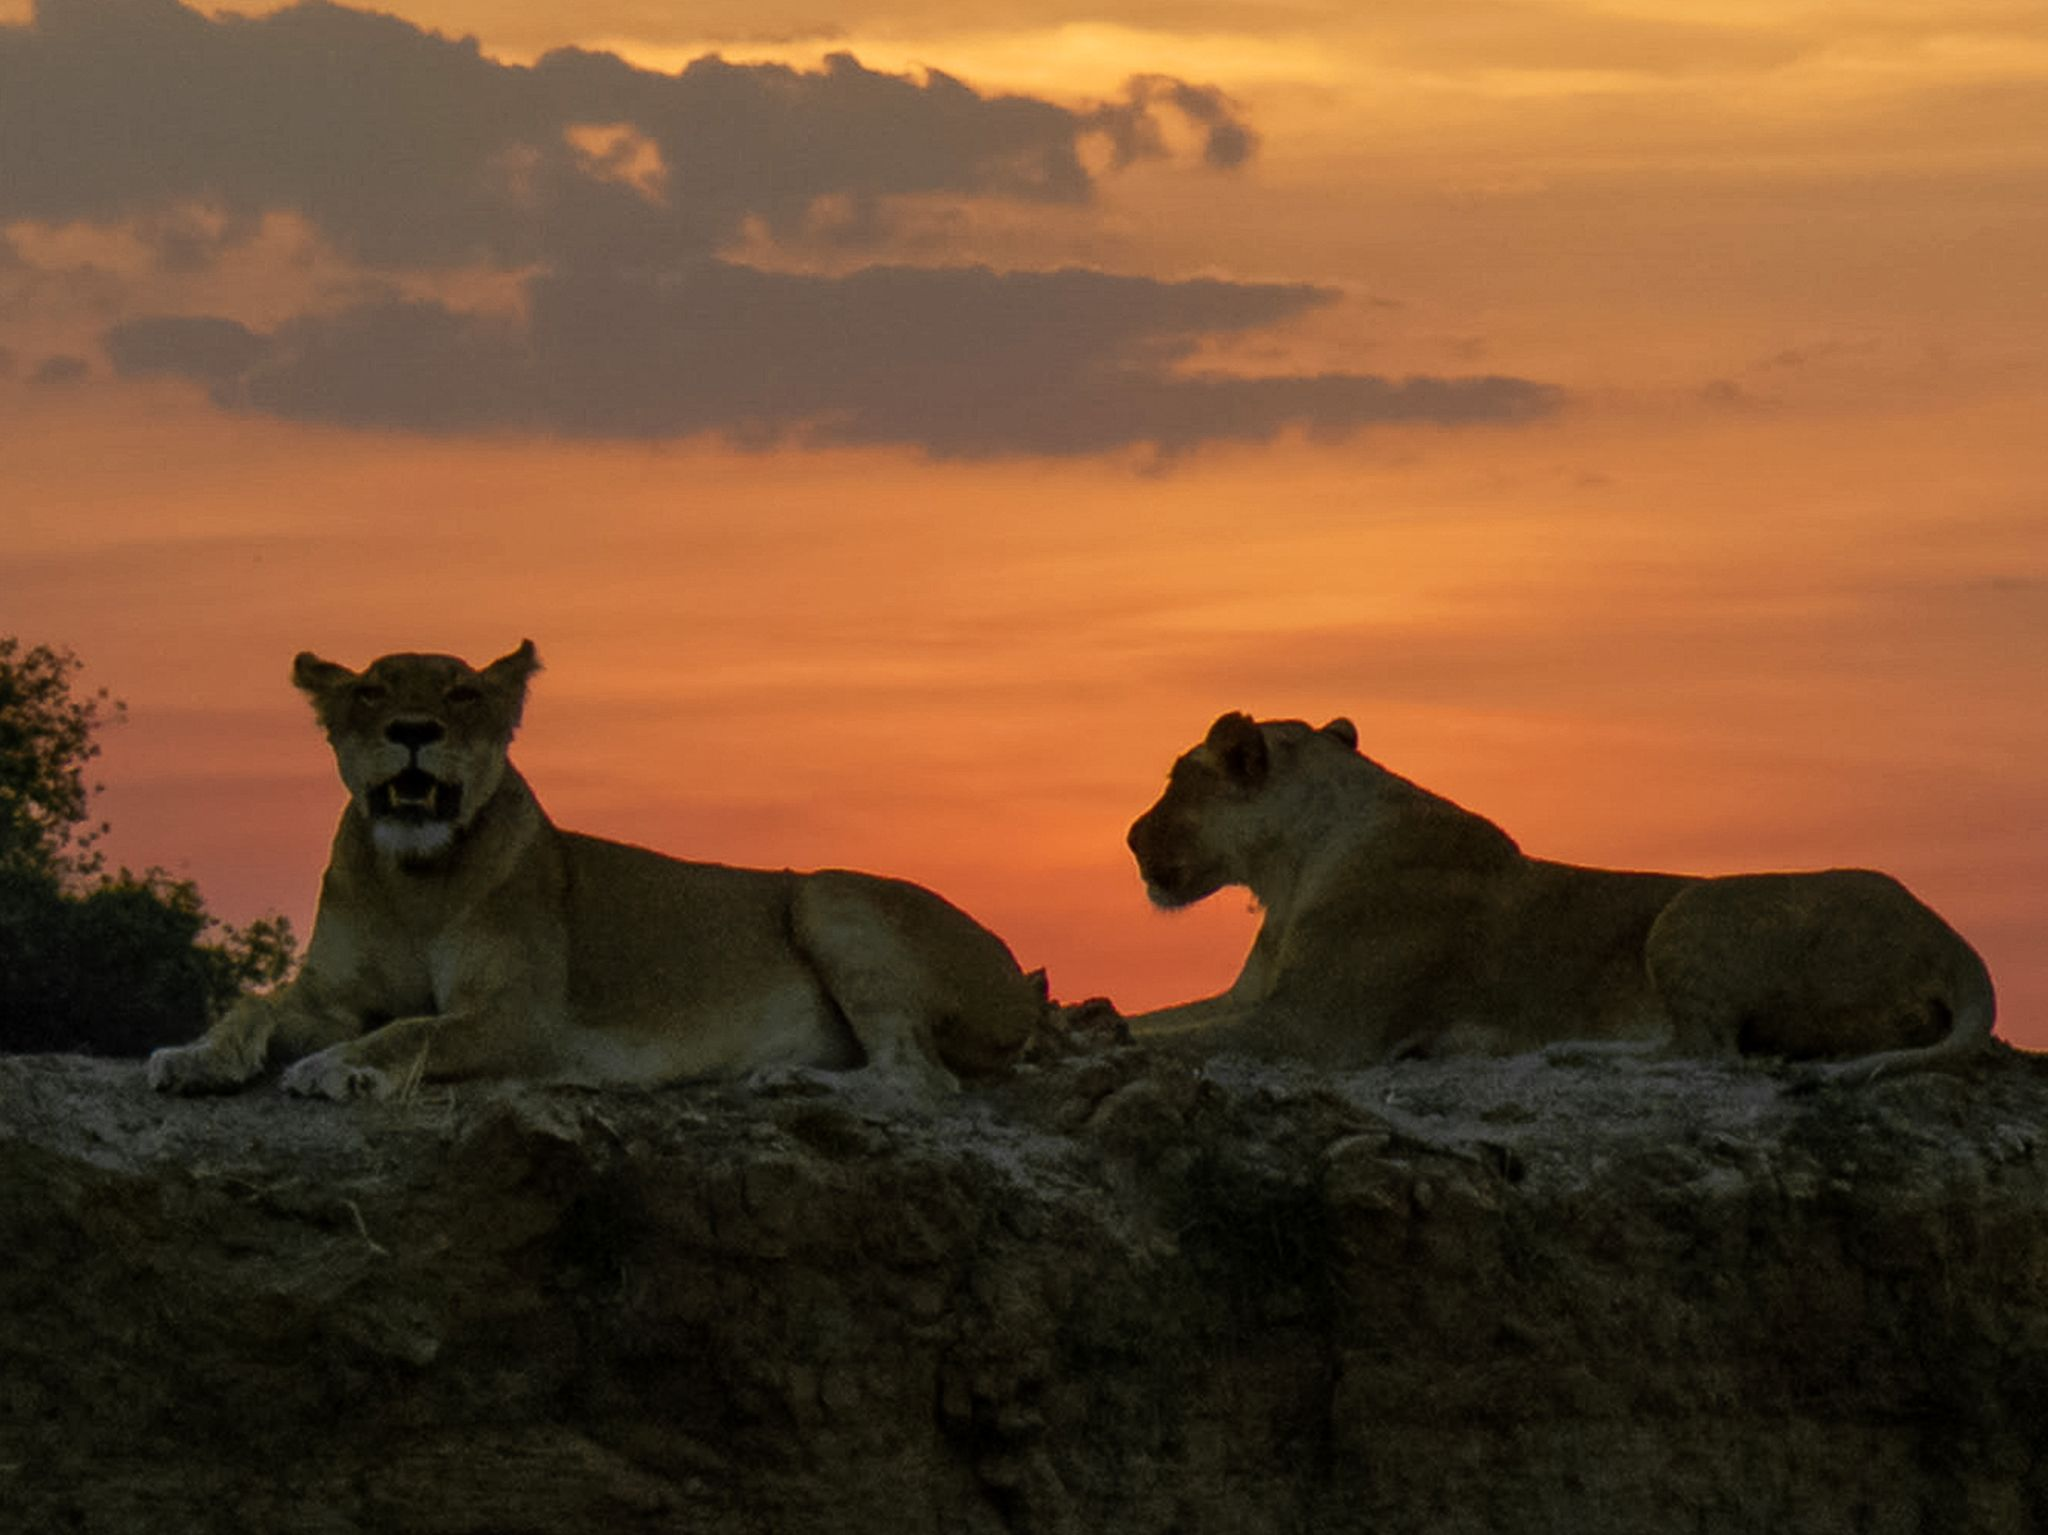 Two lionesses resting on top of river bank at sunset.  This image is from Predator Land. [Photo of the day - June 2019]